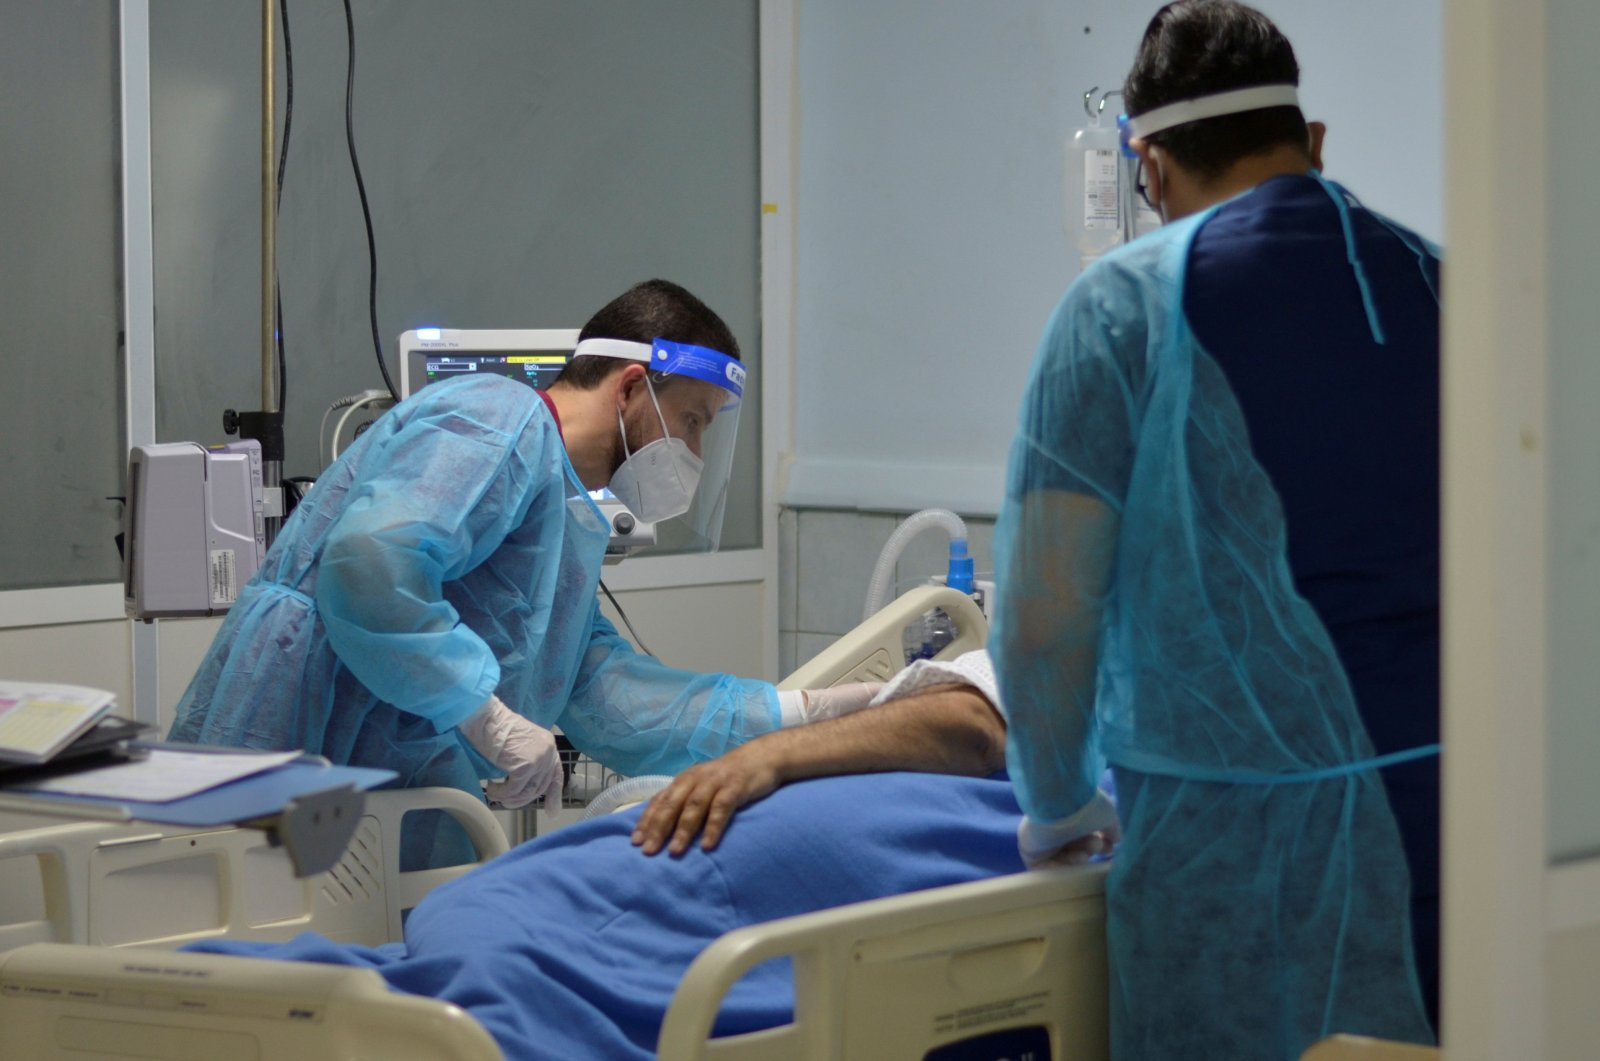 Medical staff members assist a patient suffering from coronavirus disease (COVID-19), in an intensive care unit at a hospital in Amman, Jordan, March 23, 2021.  (REUTERS/Muath Freij)